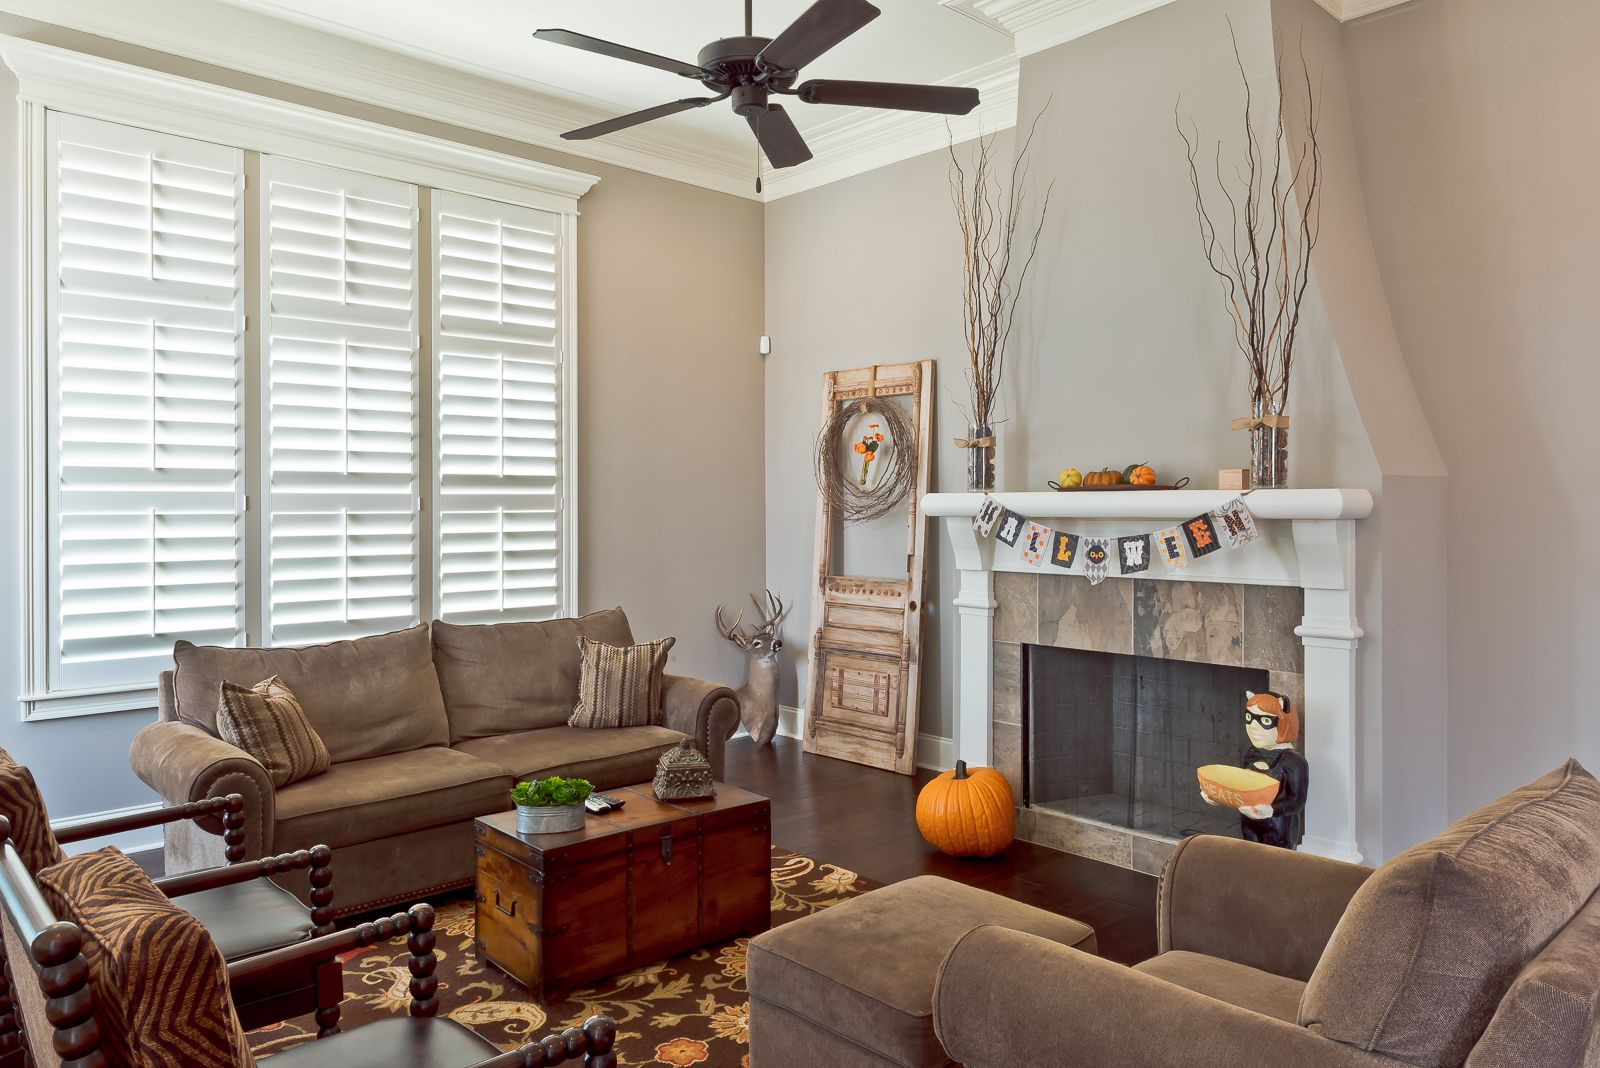 Spooktacular Savings on plantation shutters by The Louver Shop.  Call today 800-528-7866 or visit our website - www.louvershop.com.